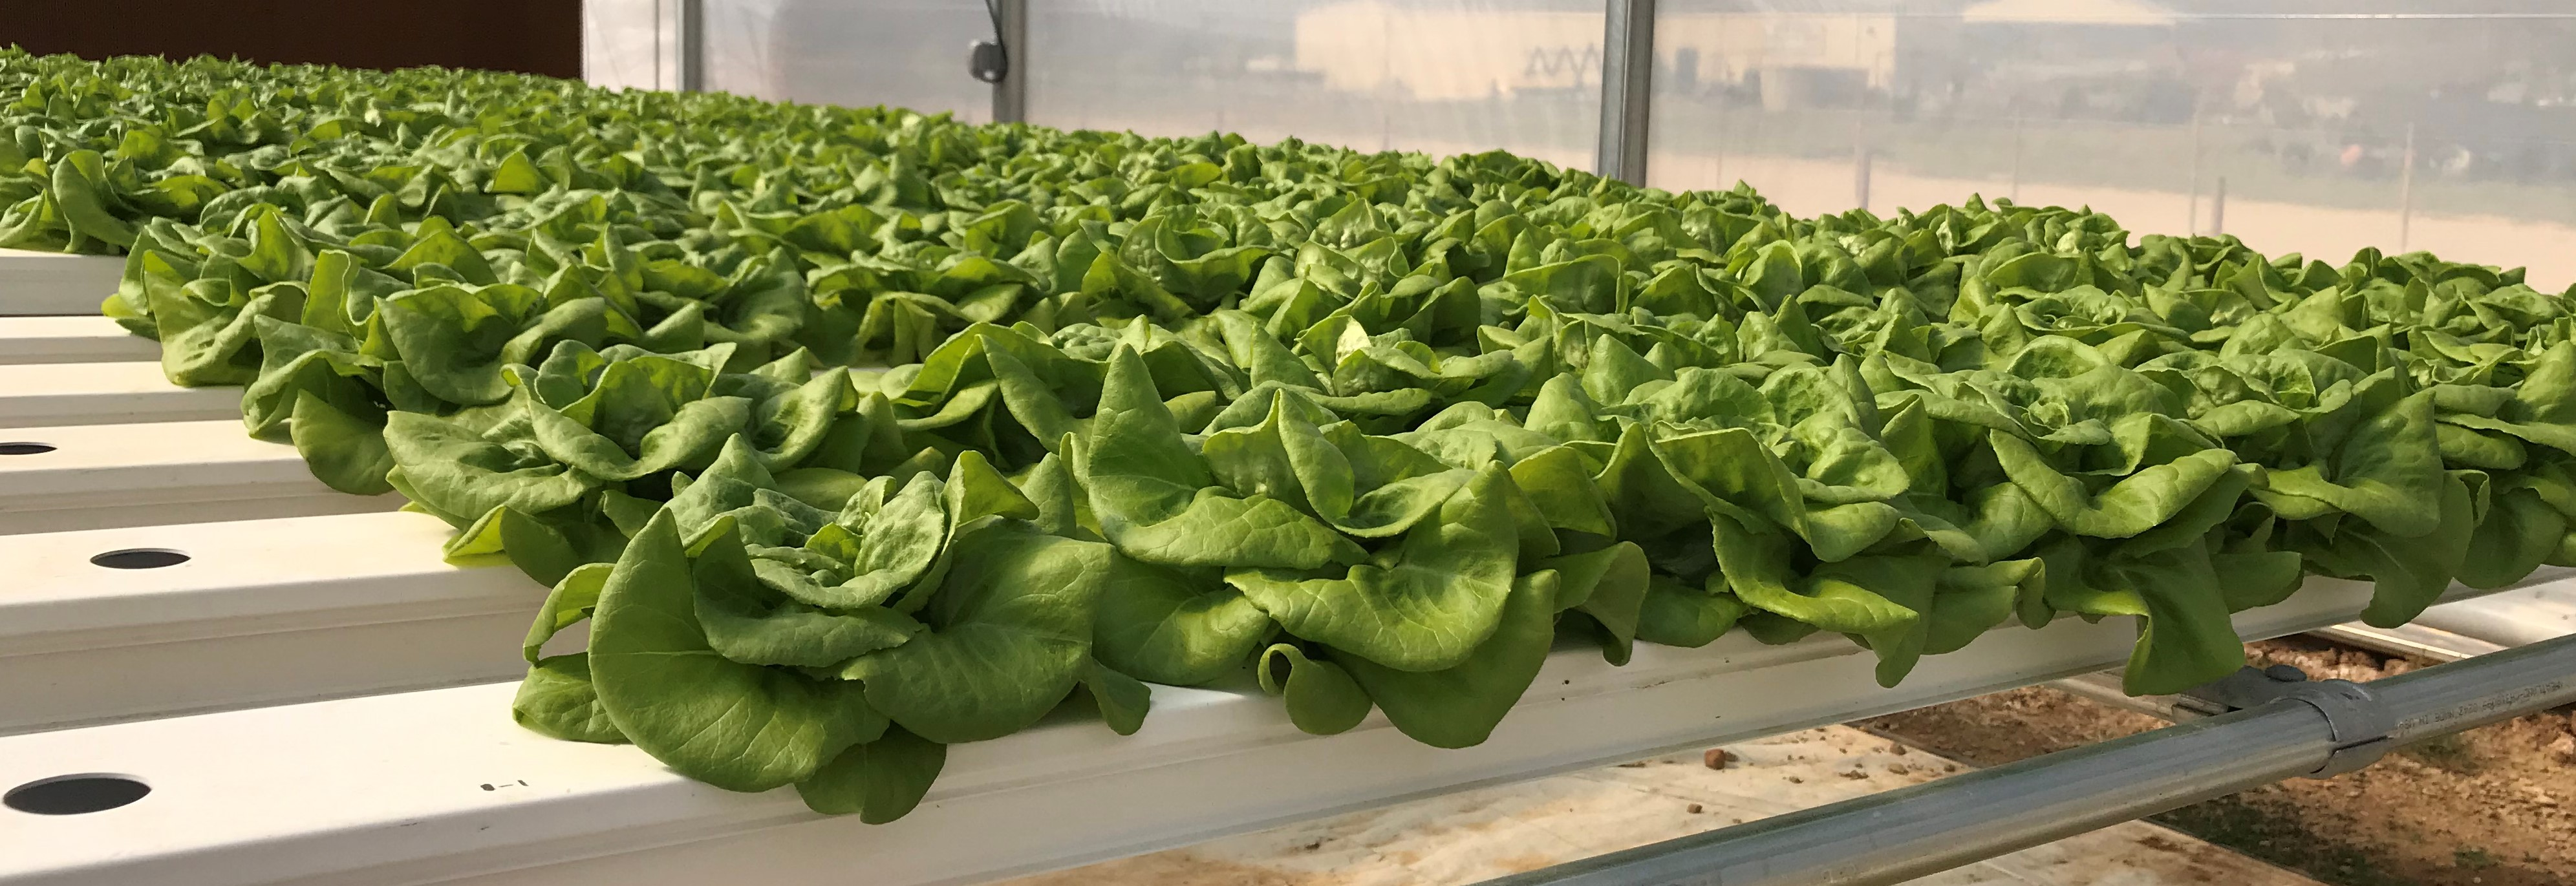 Fresh lettuce growing in aquaponics flat